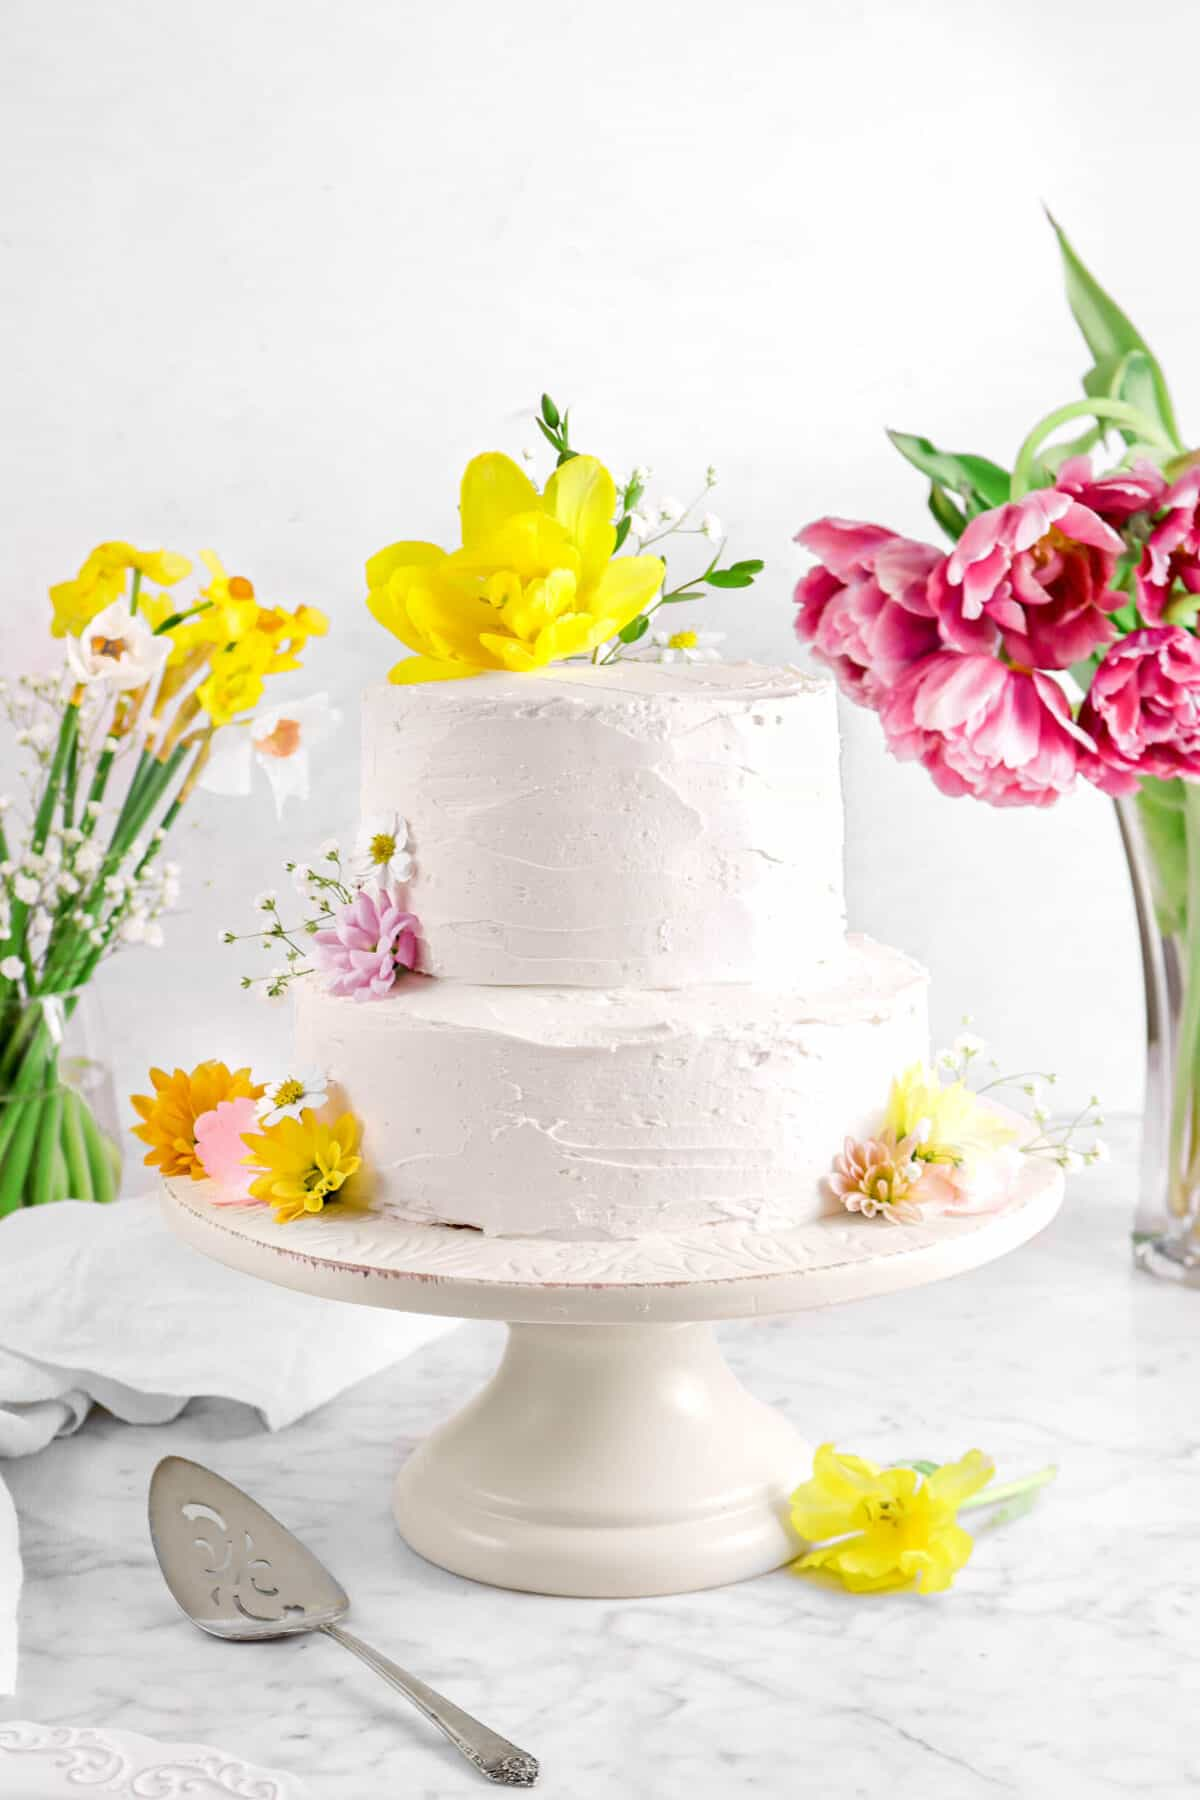 two tier almond layer cake on cake stand with flowers and cake knife